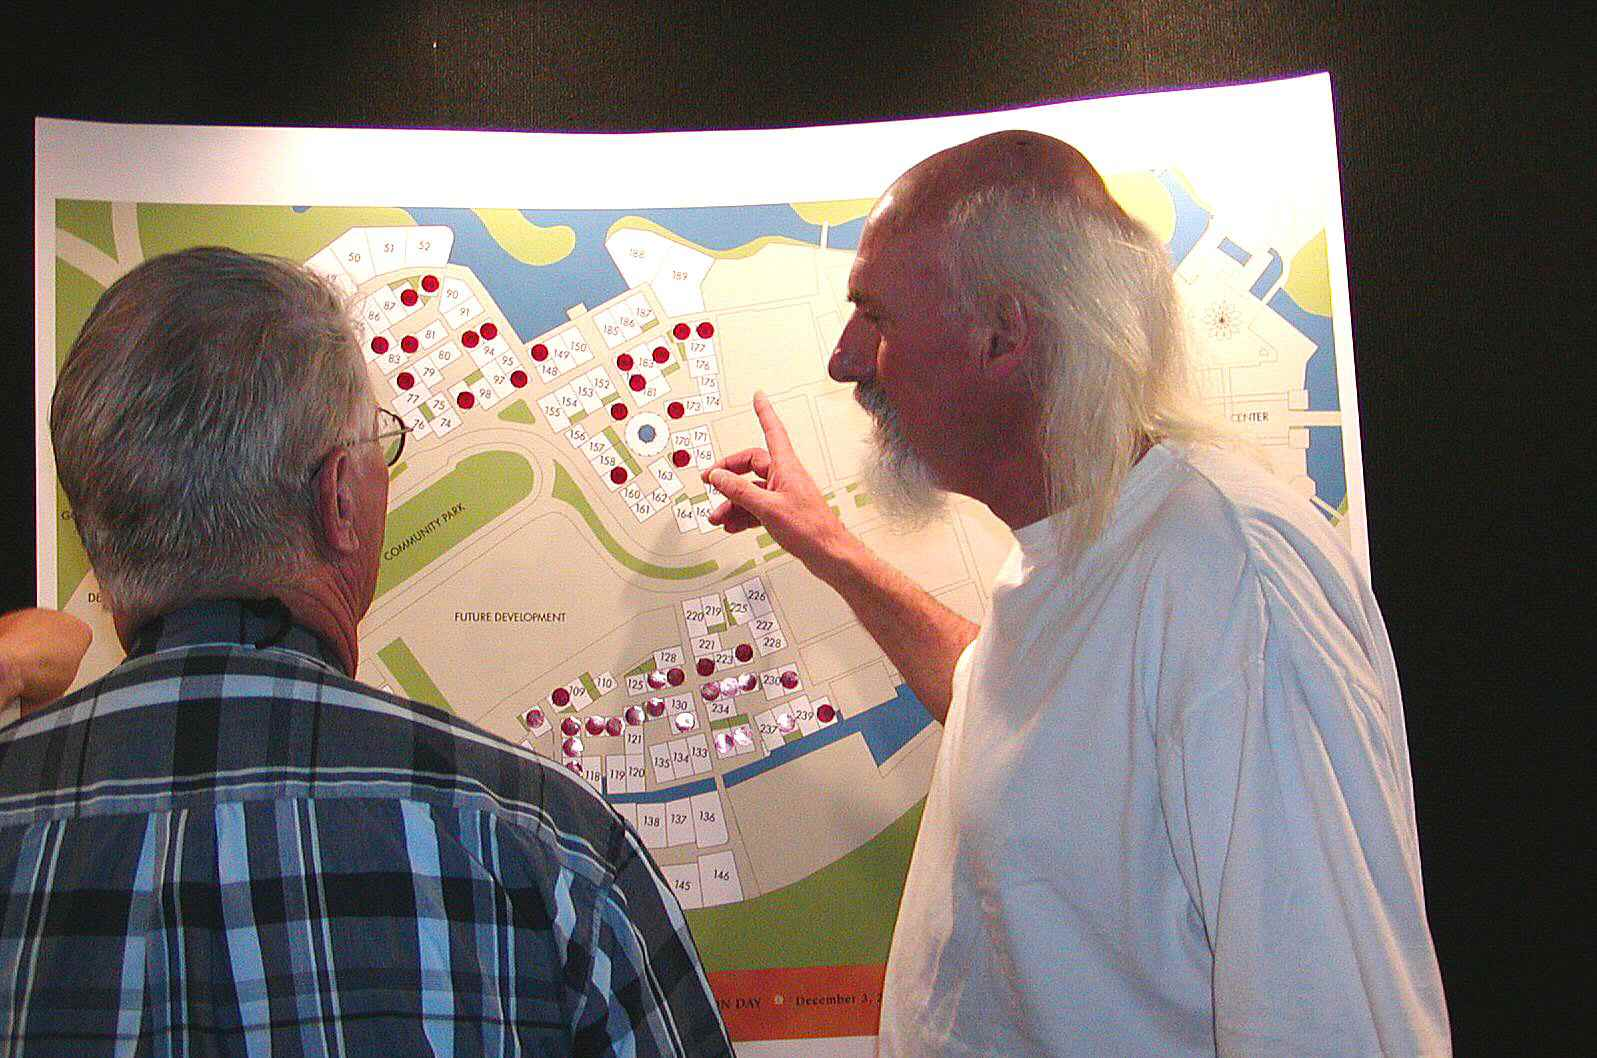 baldish man with scraggly white hair and beard explaining the urban layout to man in plaid shirt